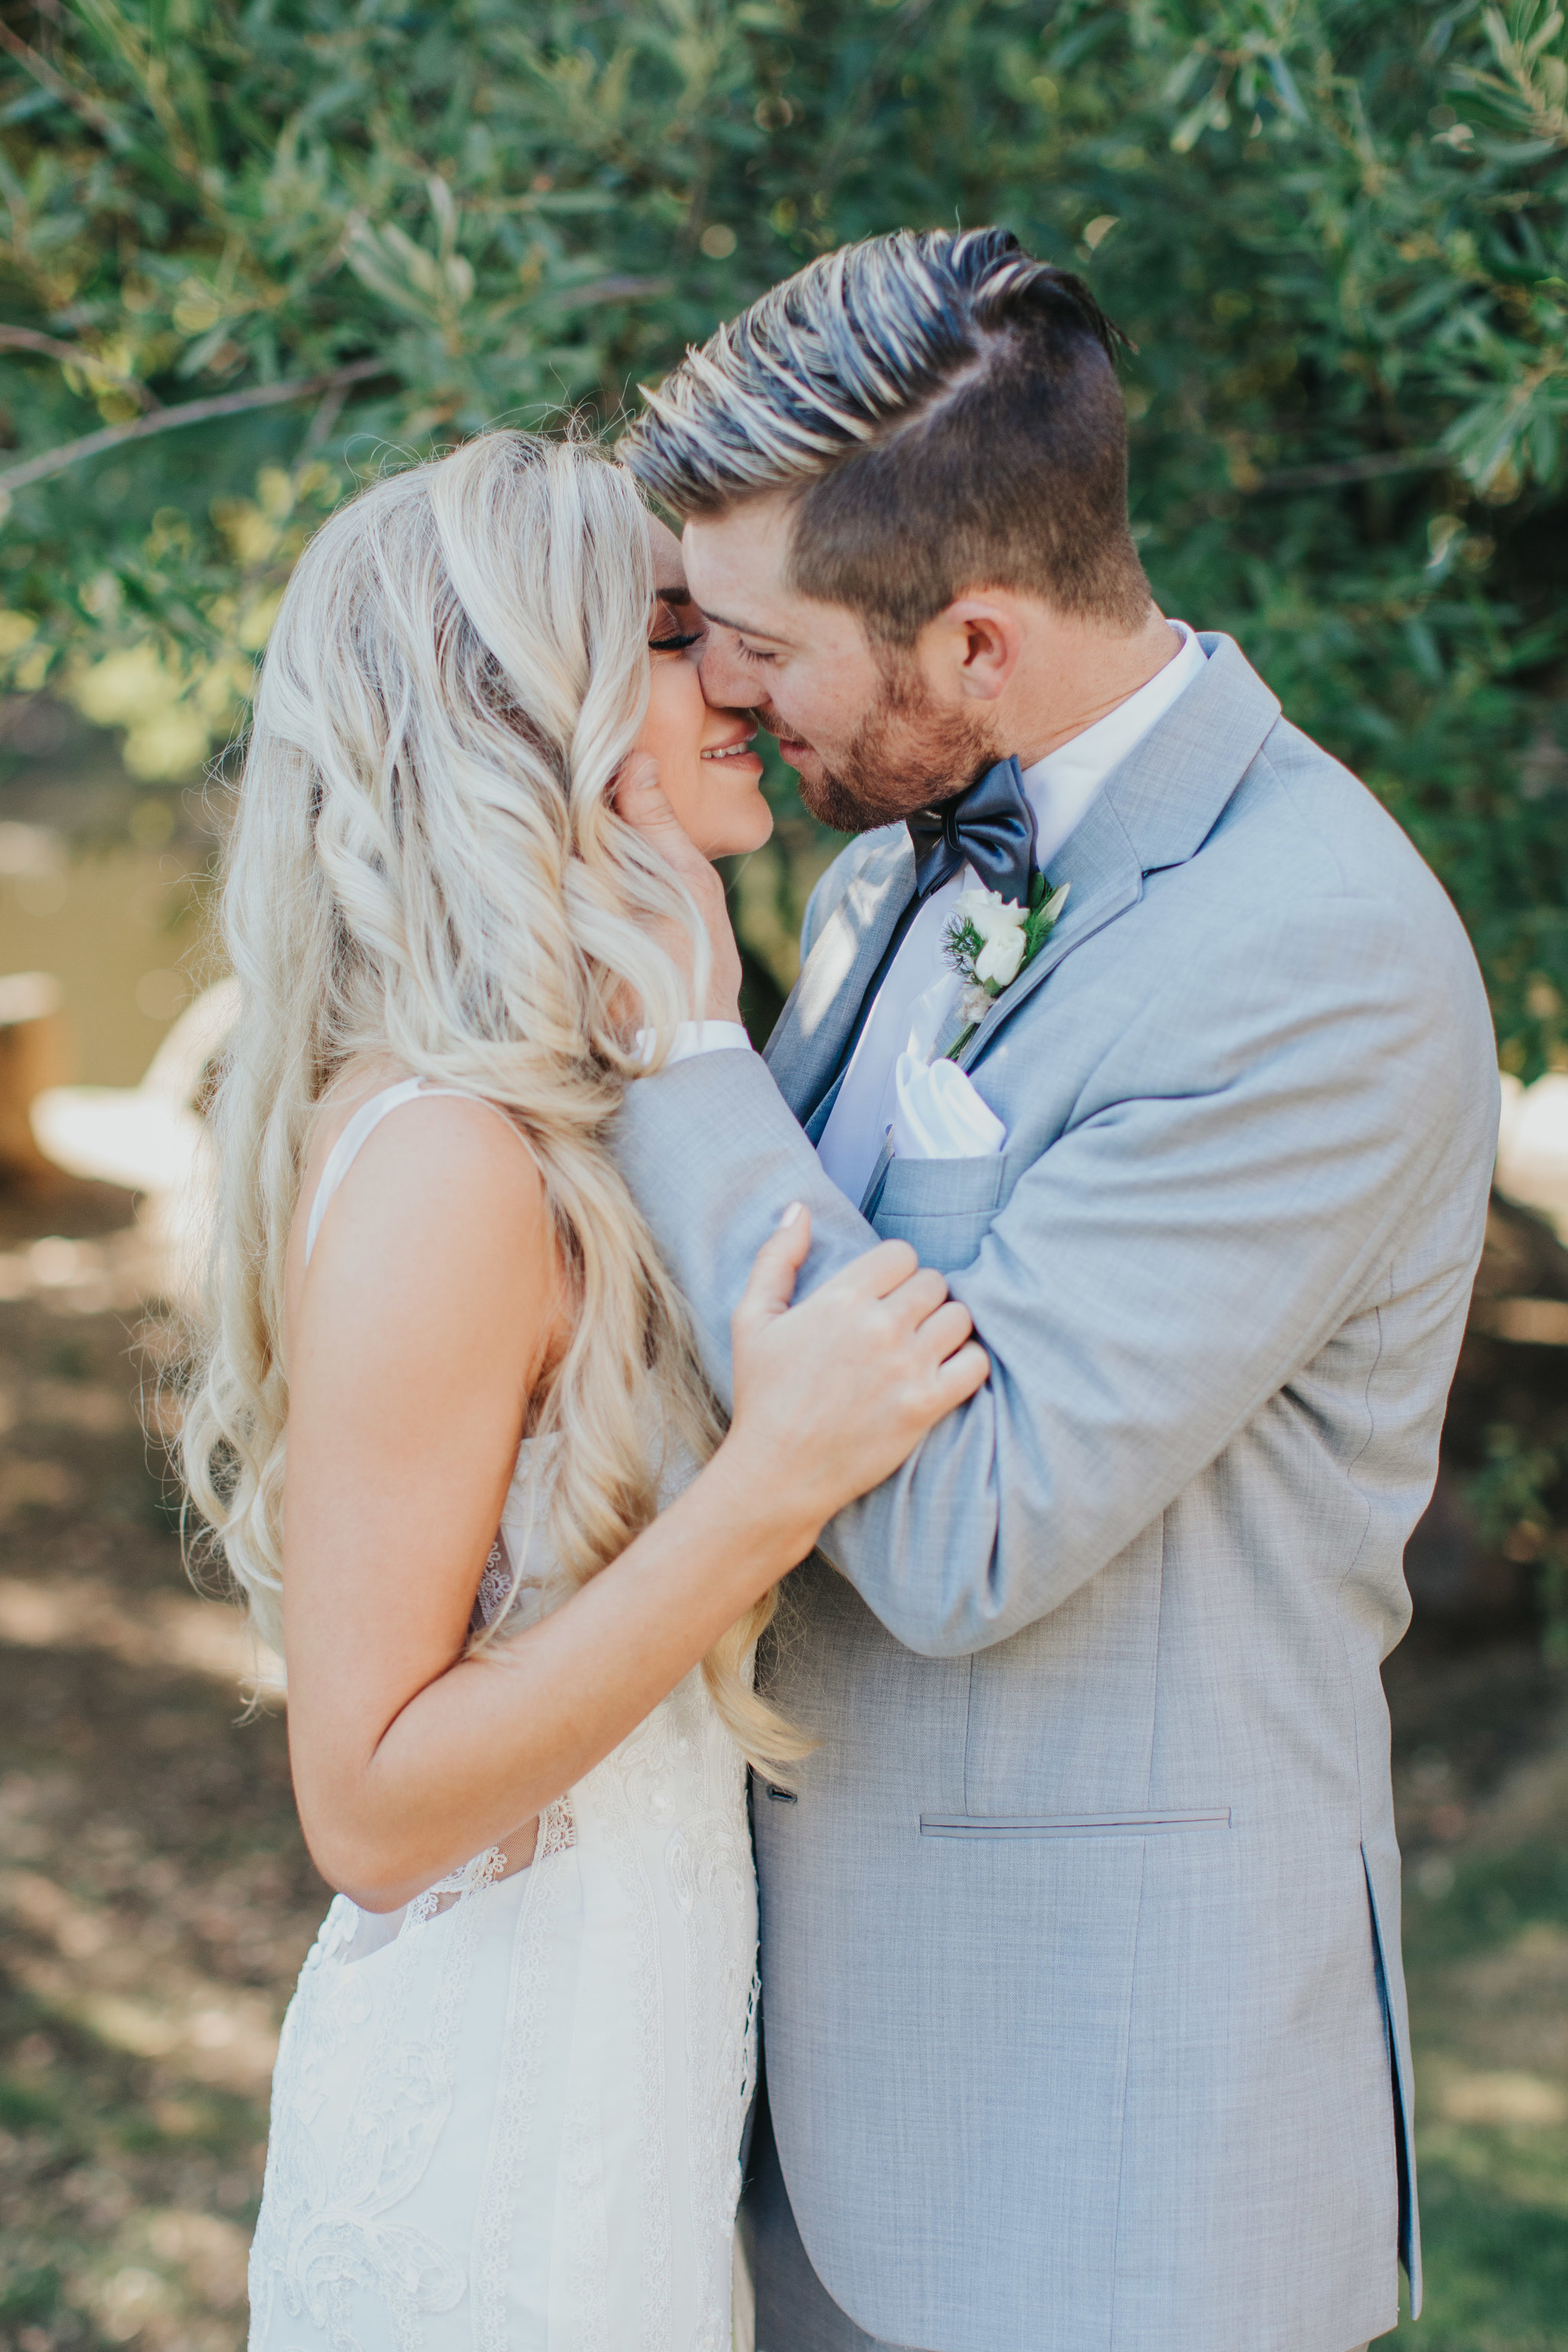 Wedding Kiss | Calamigos Ranch